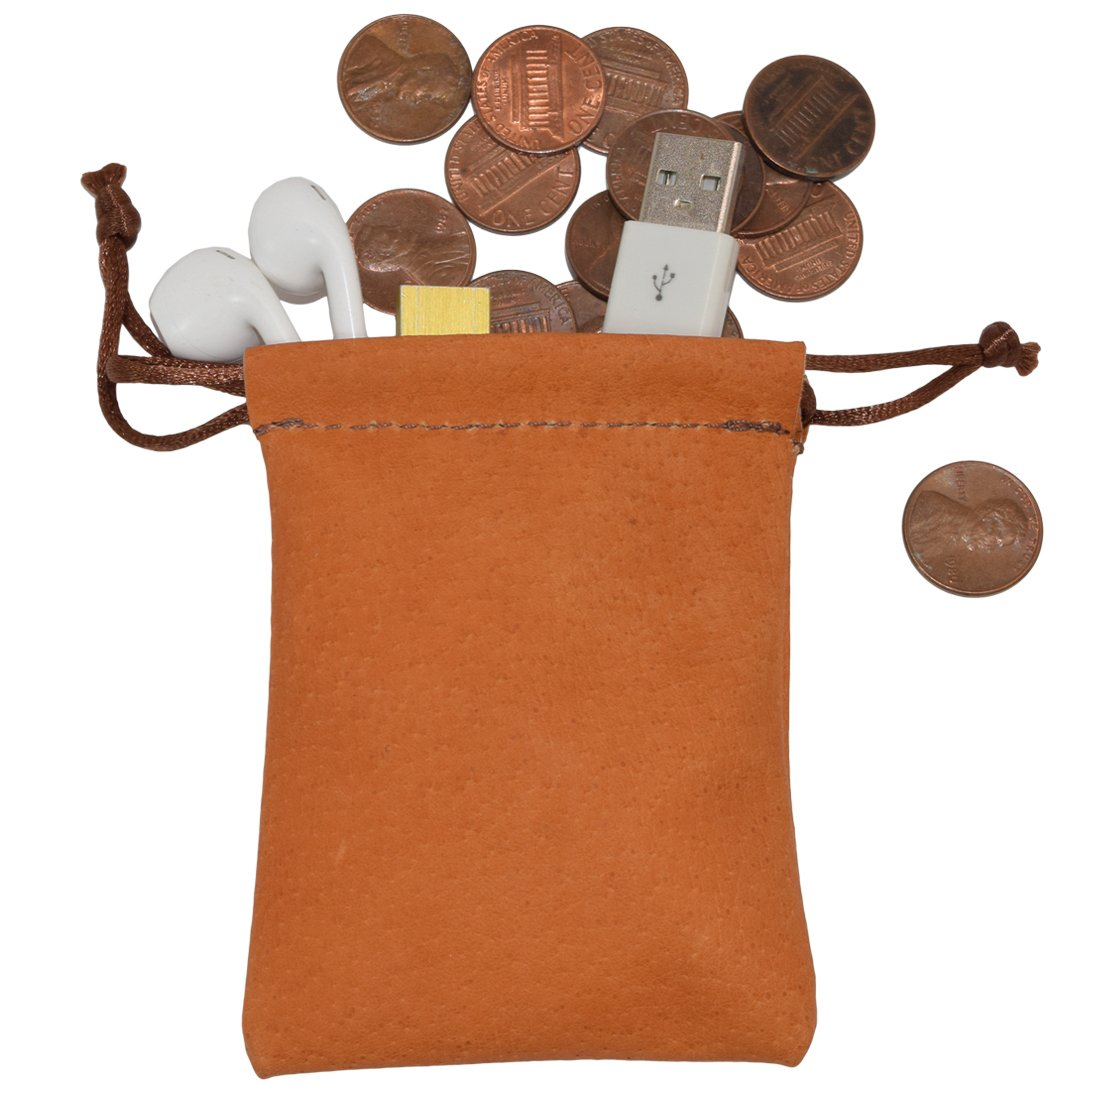 Sheepskin Coin/Cables/Small Board Games Pouch Handmade by Hide & Drink :: Tangerine